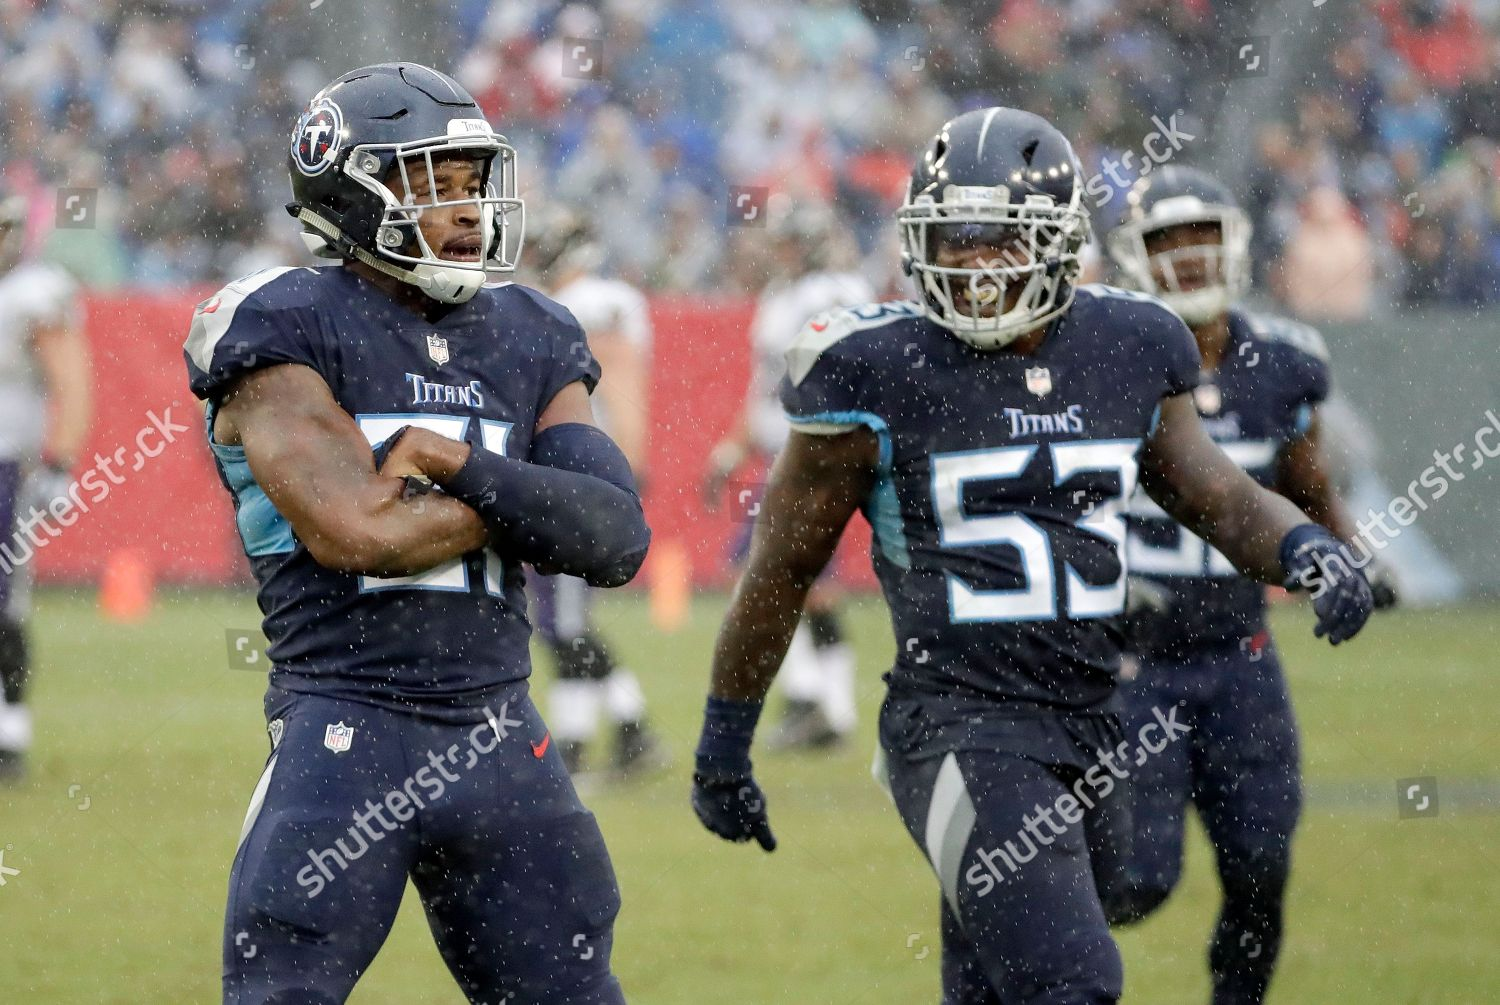 newest collection 2ef61 c7a40 Tennessee Titans linebacker Daren Bates 53 watches Editorial ...